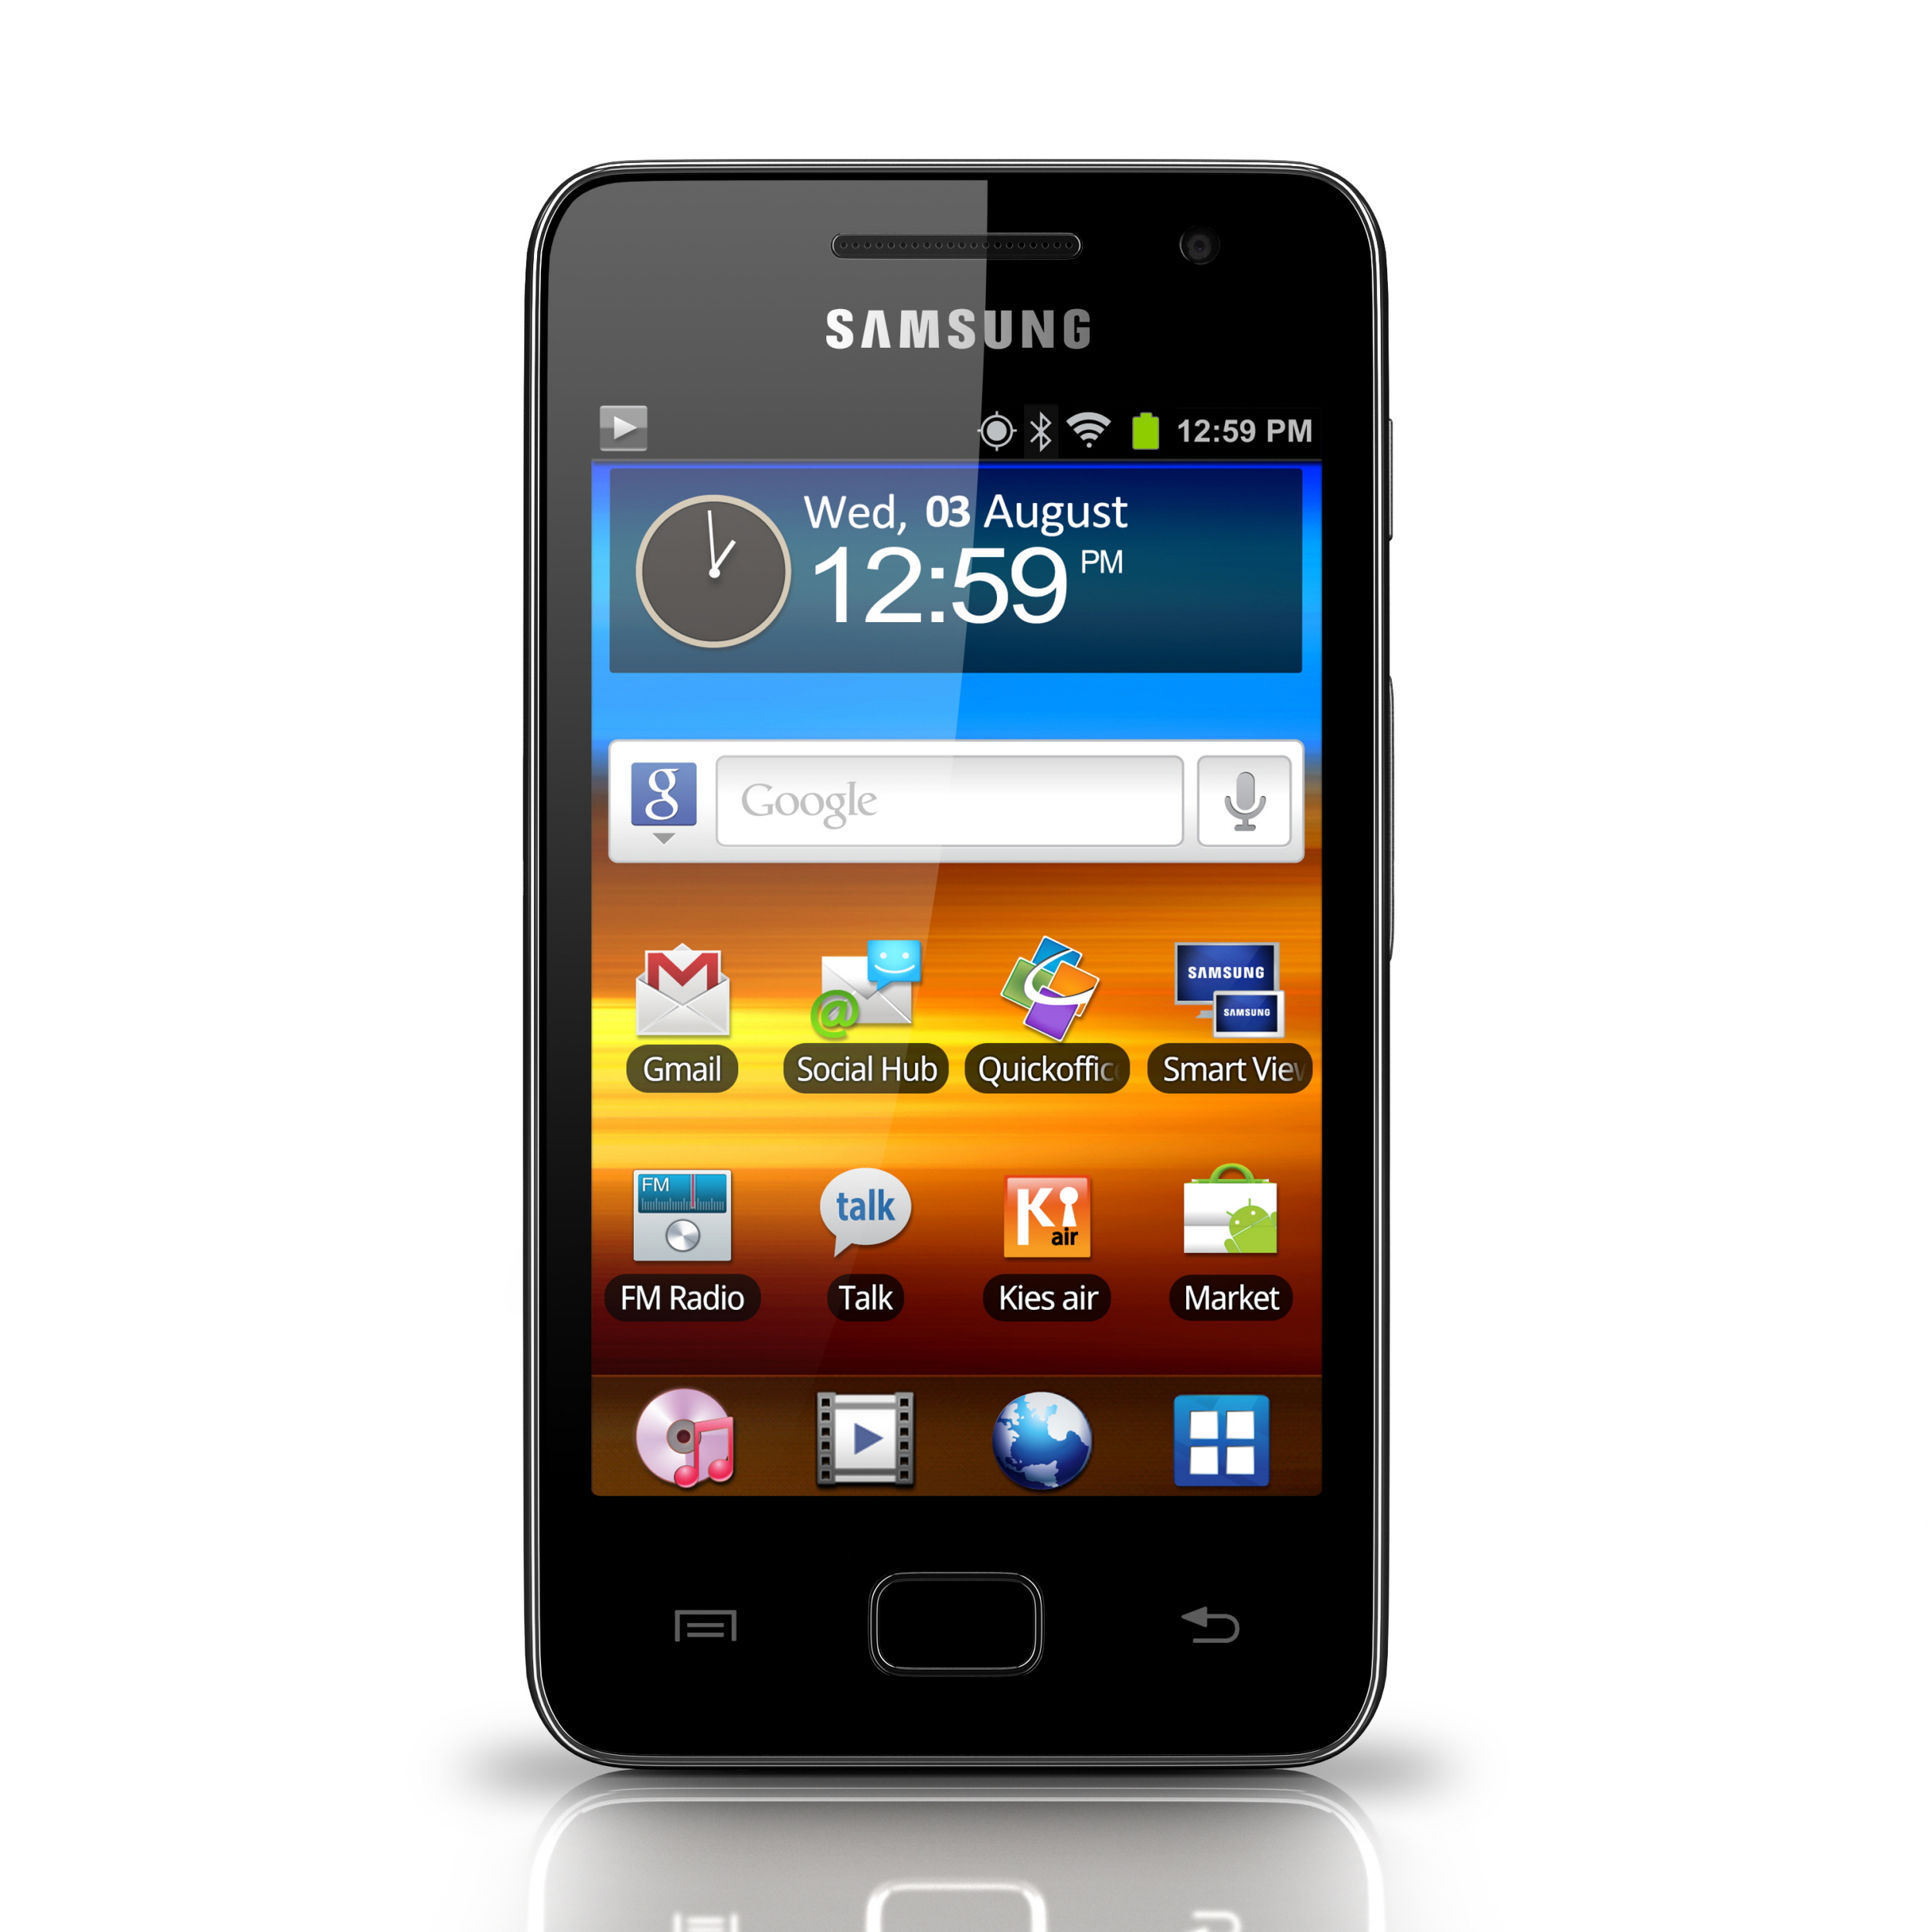 Samsung reveals Galaxy S WiFi 3.6, a contract-free, WiFi-only cell phone